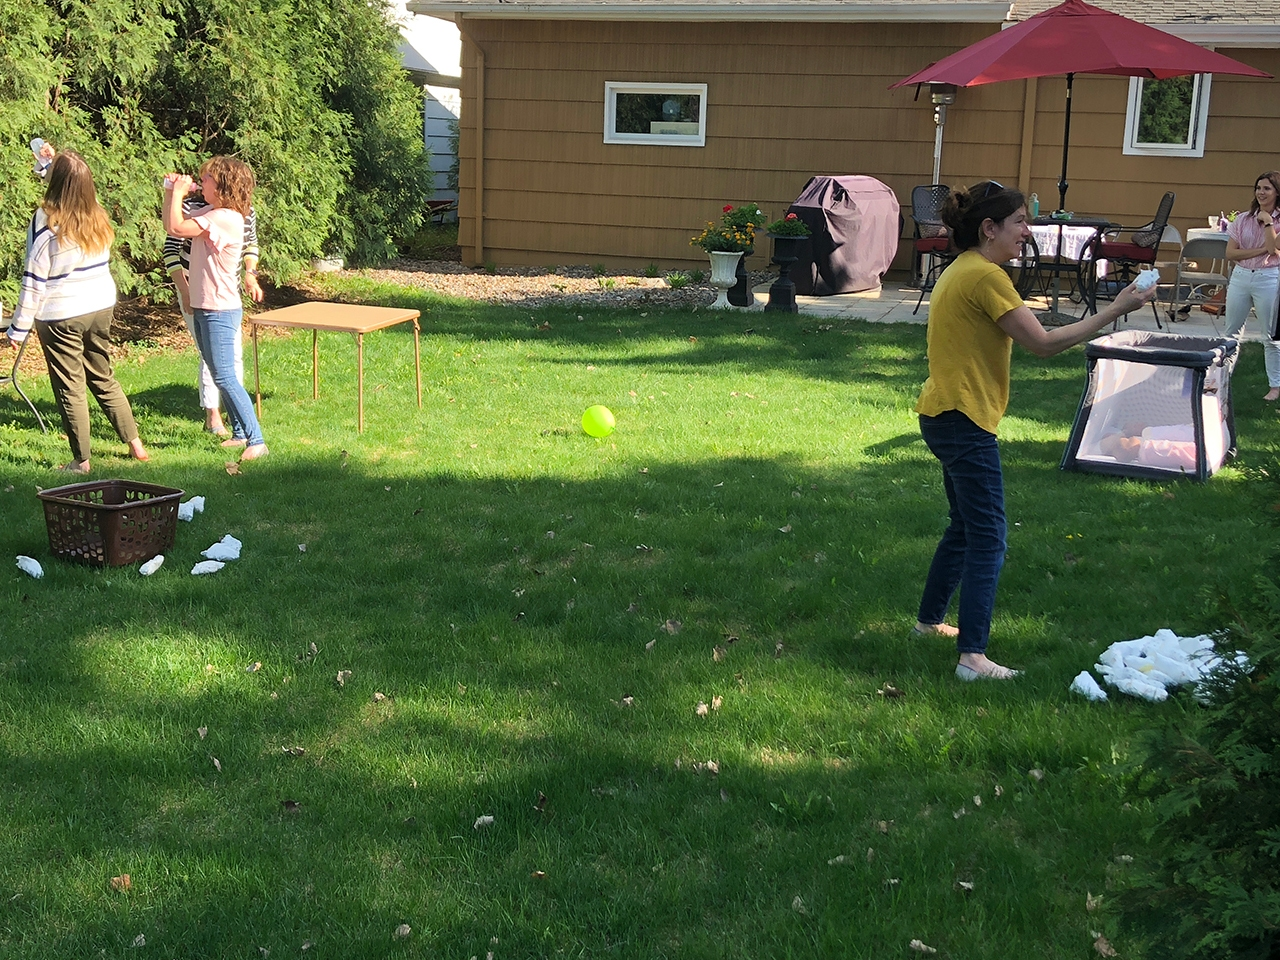 people in backyard playing baby shower games